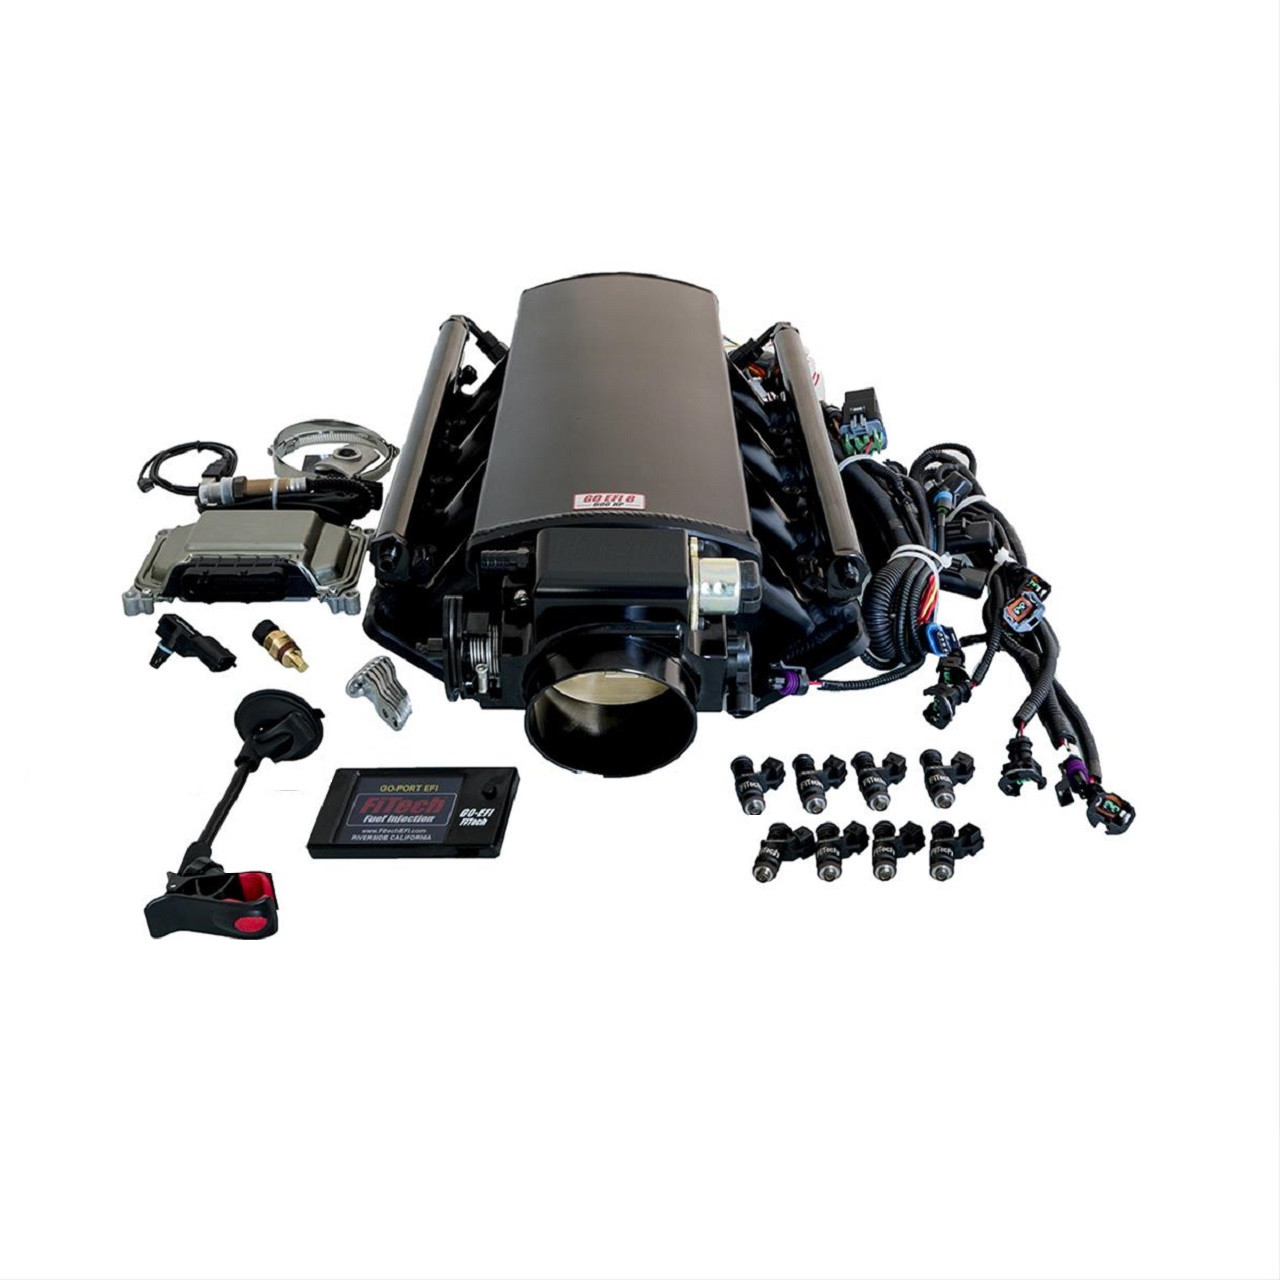 FiTech 500HP LS1/LS2/LS6 92mm Ultimate EFI System 70001 on